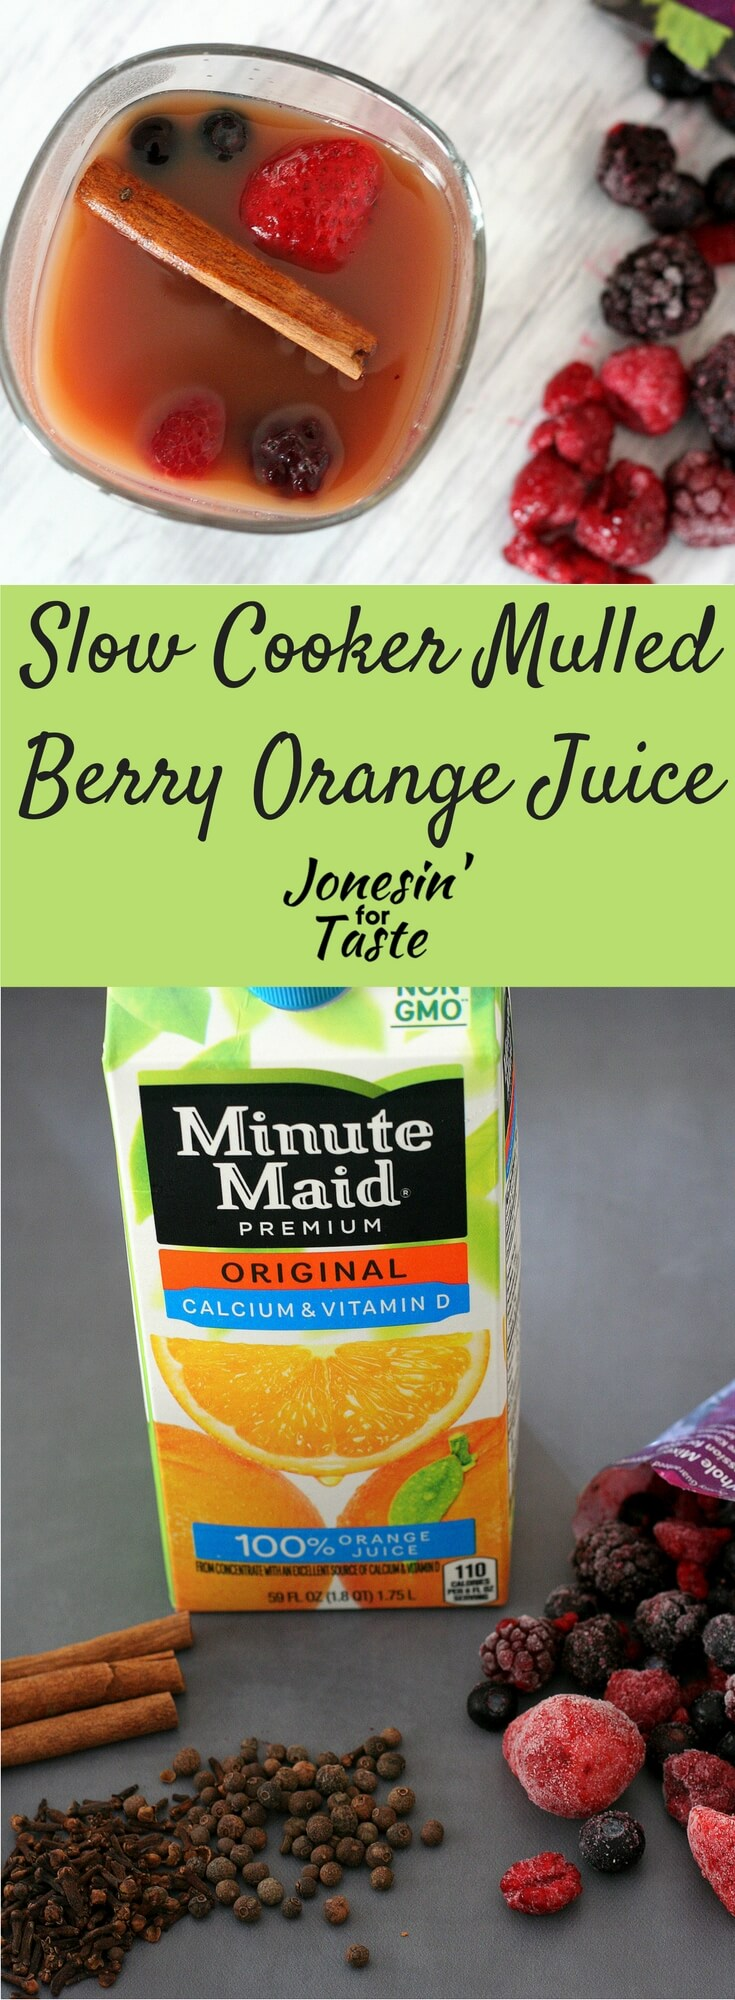 Simple Slow Cooker Mulled Berry Orange Juice is a non-alcoholic beverage made with frozen berries, spices, and OJ that is fantastic for the holidays.  #mocktails #slowcookerdrinks